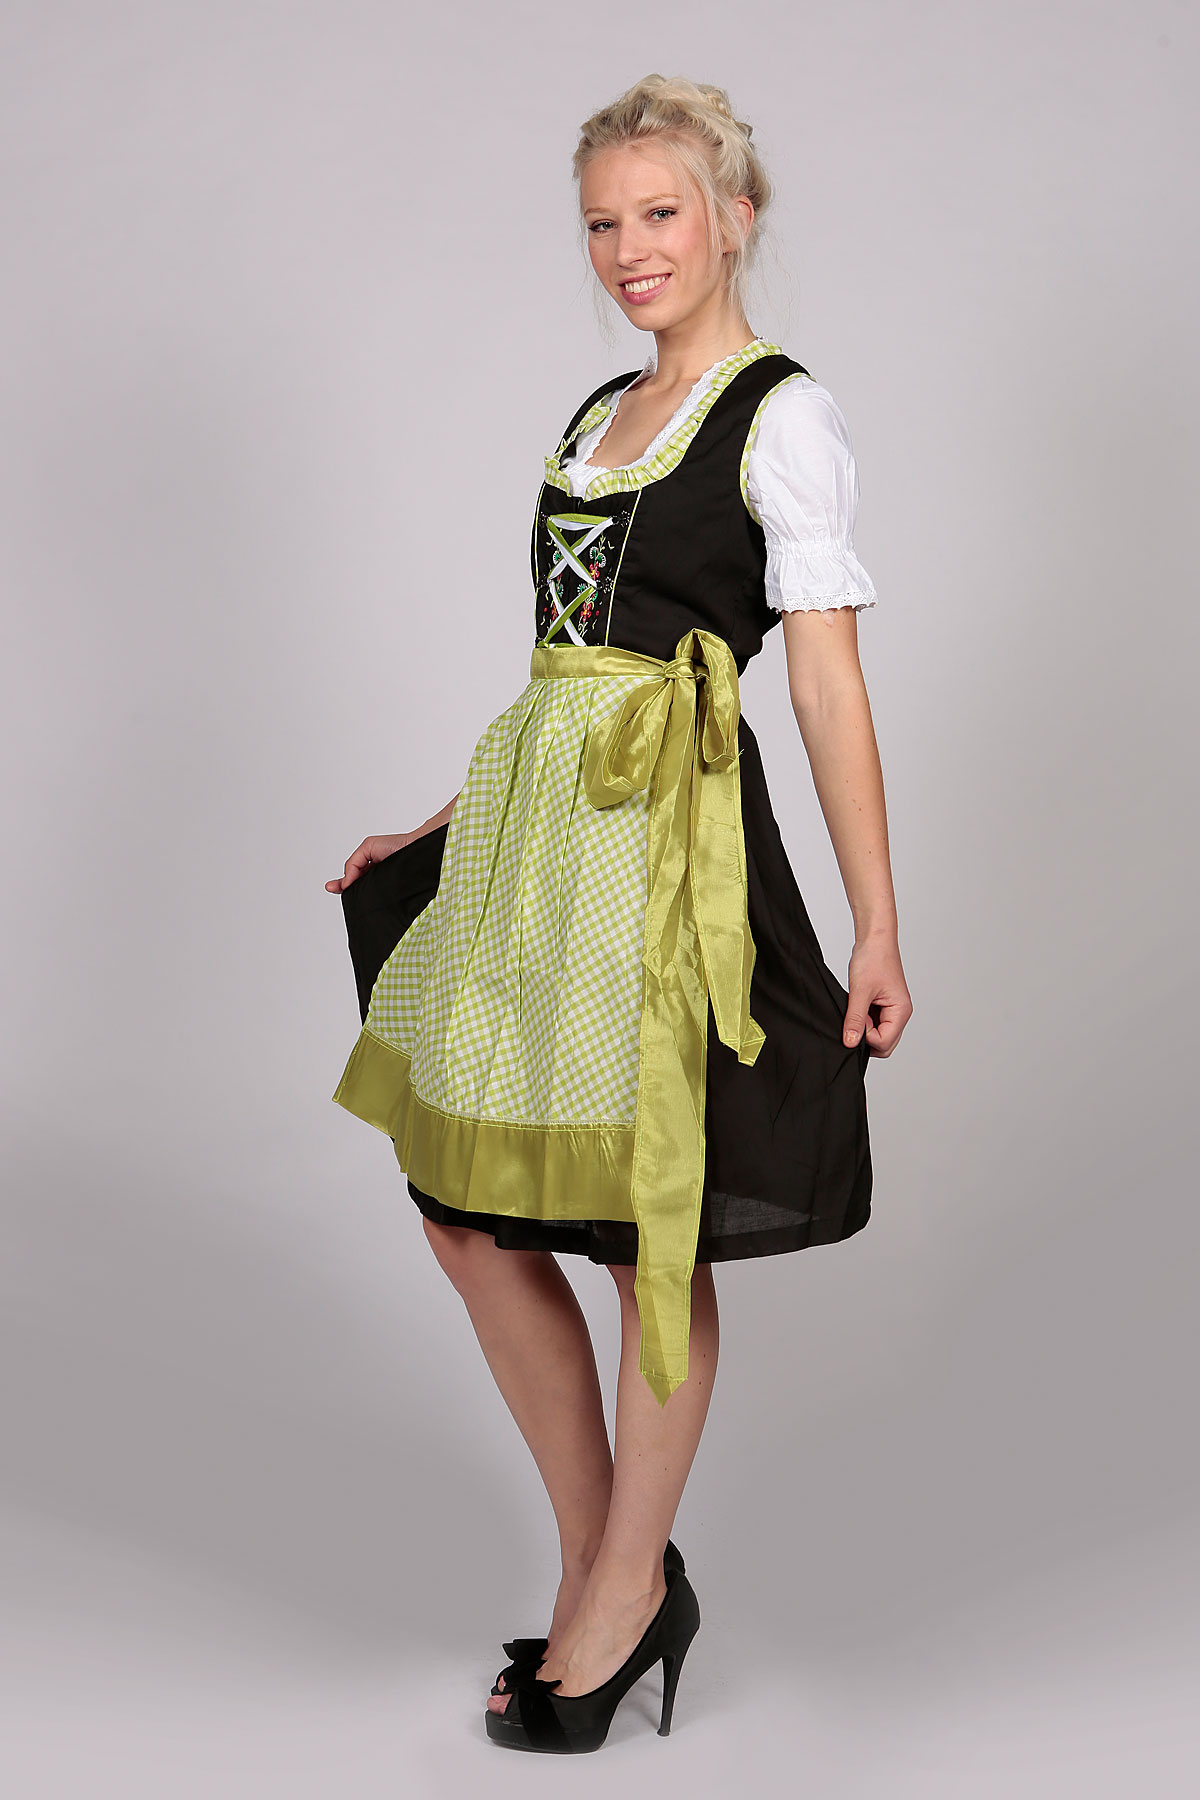 German Dirndl Dress Amara Black Green Lederhosen Store